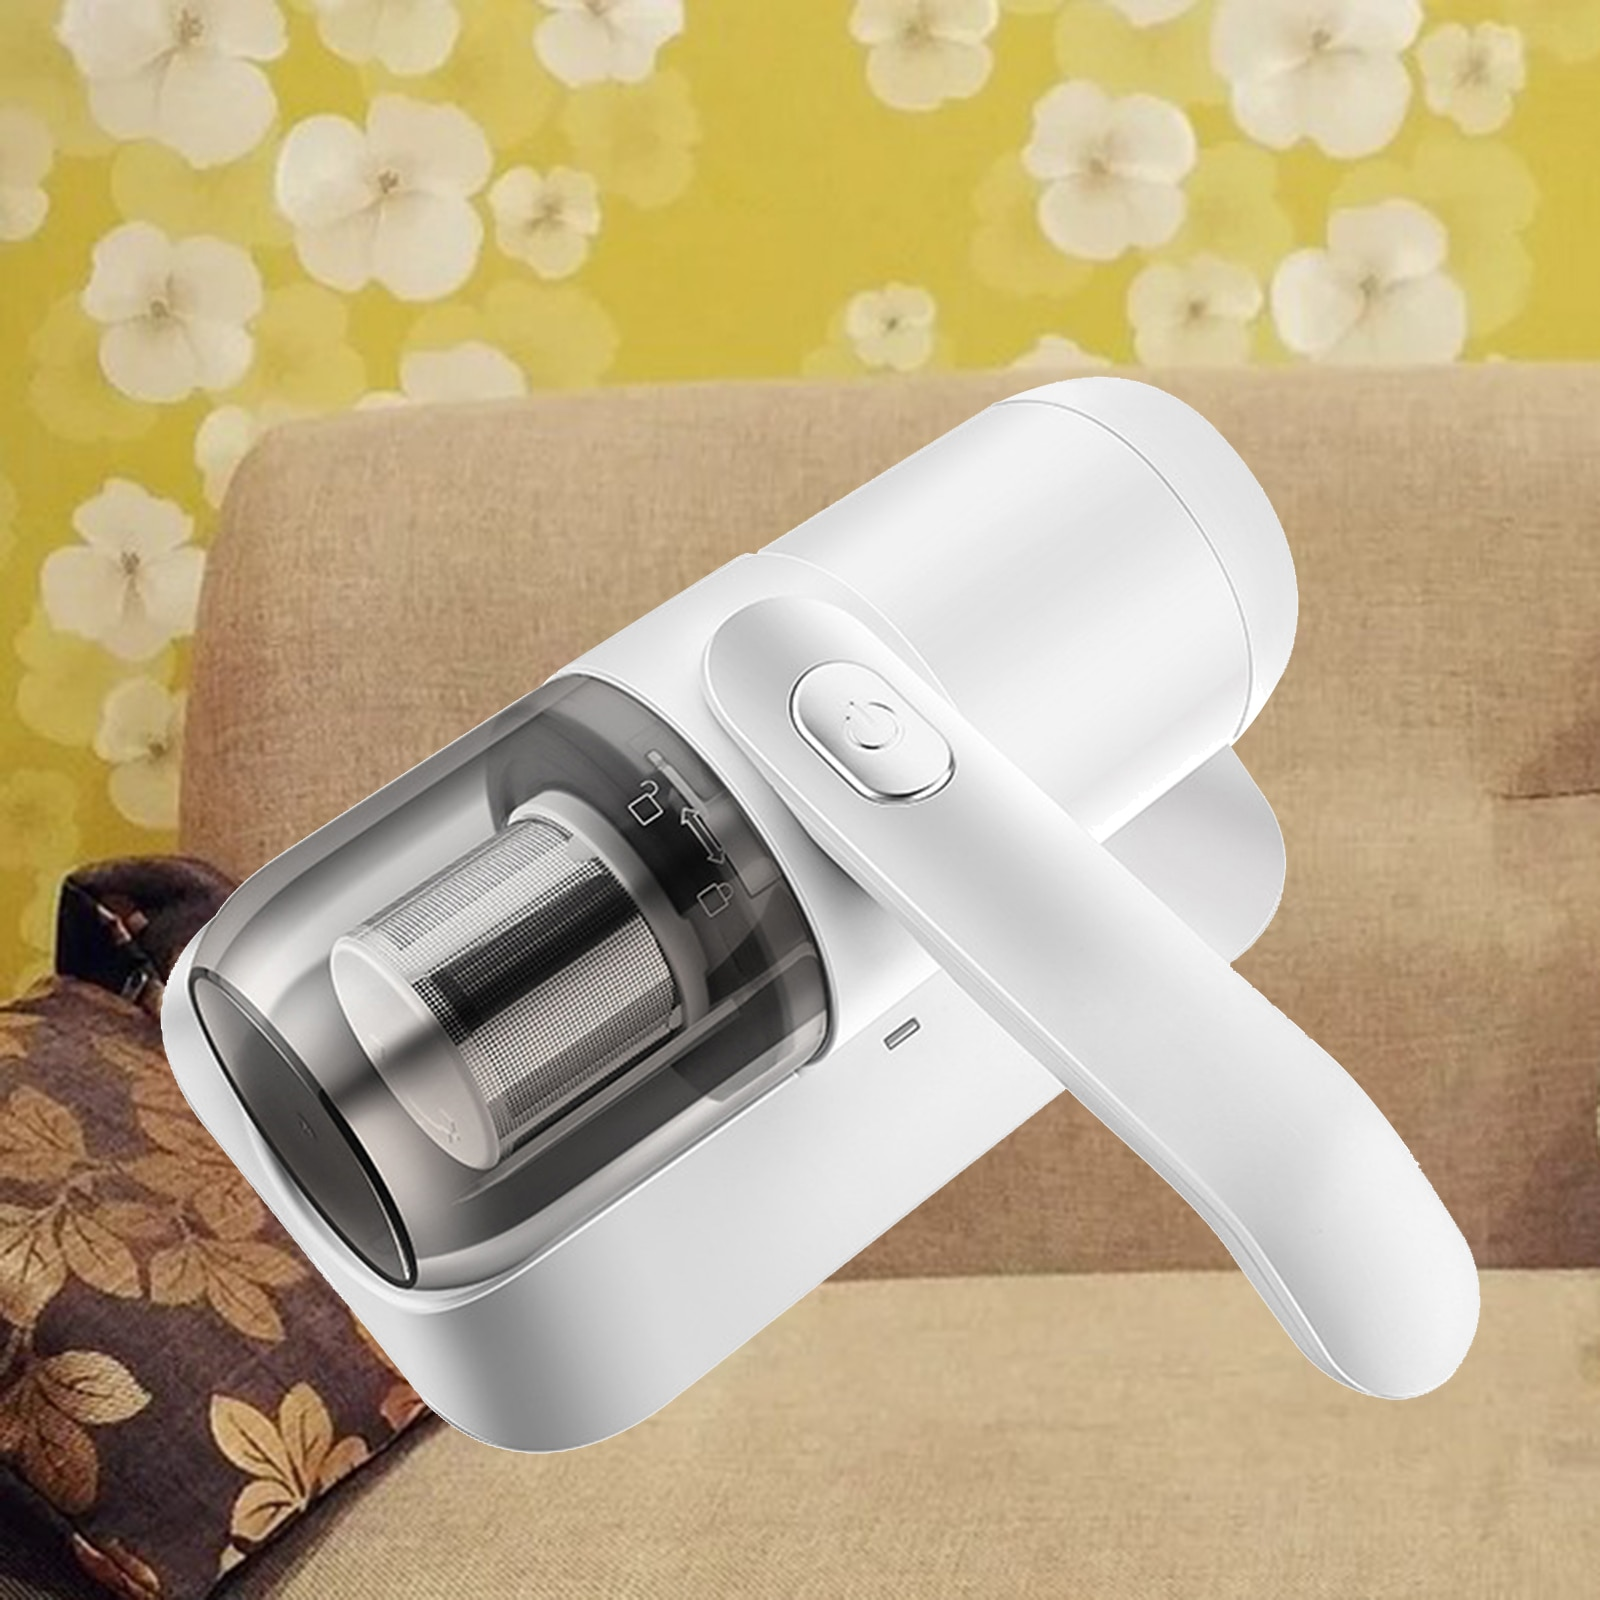 Handheld UV Mites Dust Vacuum Cleaner for Bed Sofa EU Plug with Cord